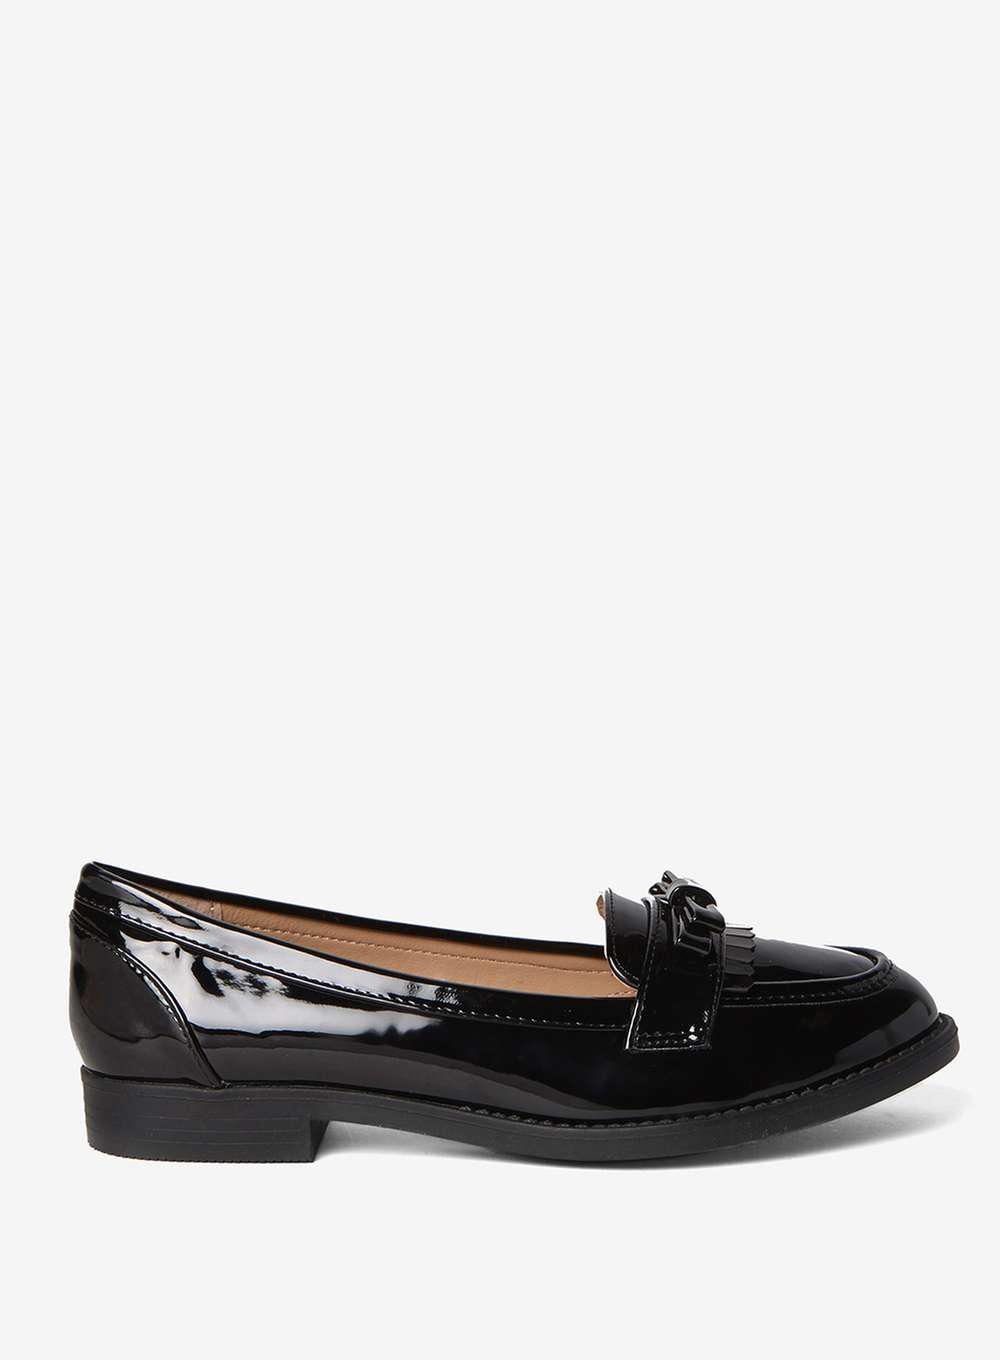 WIDE FIT LENNY - Mocasines - black ALIRAWEN - Sandalias de dedo - black AgQxrIy